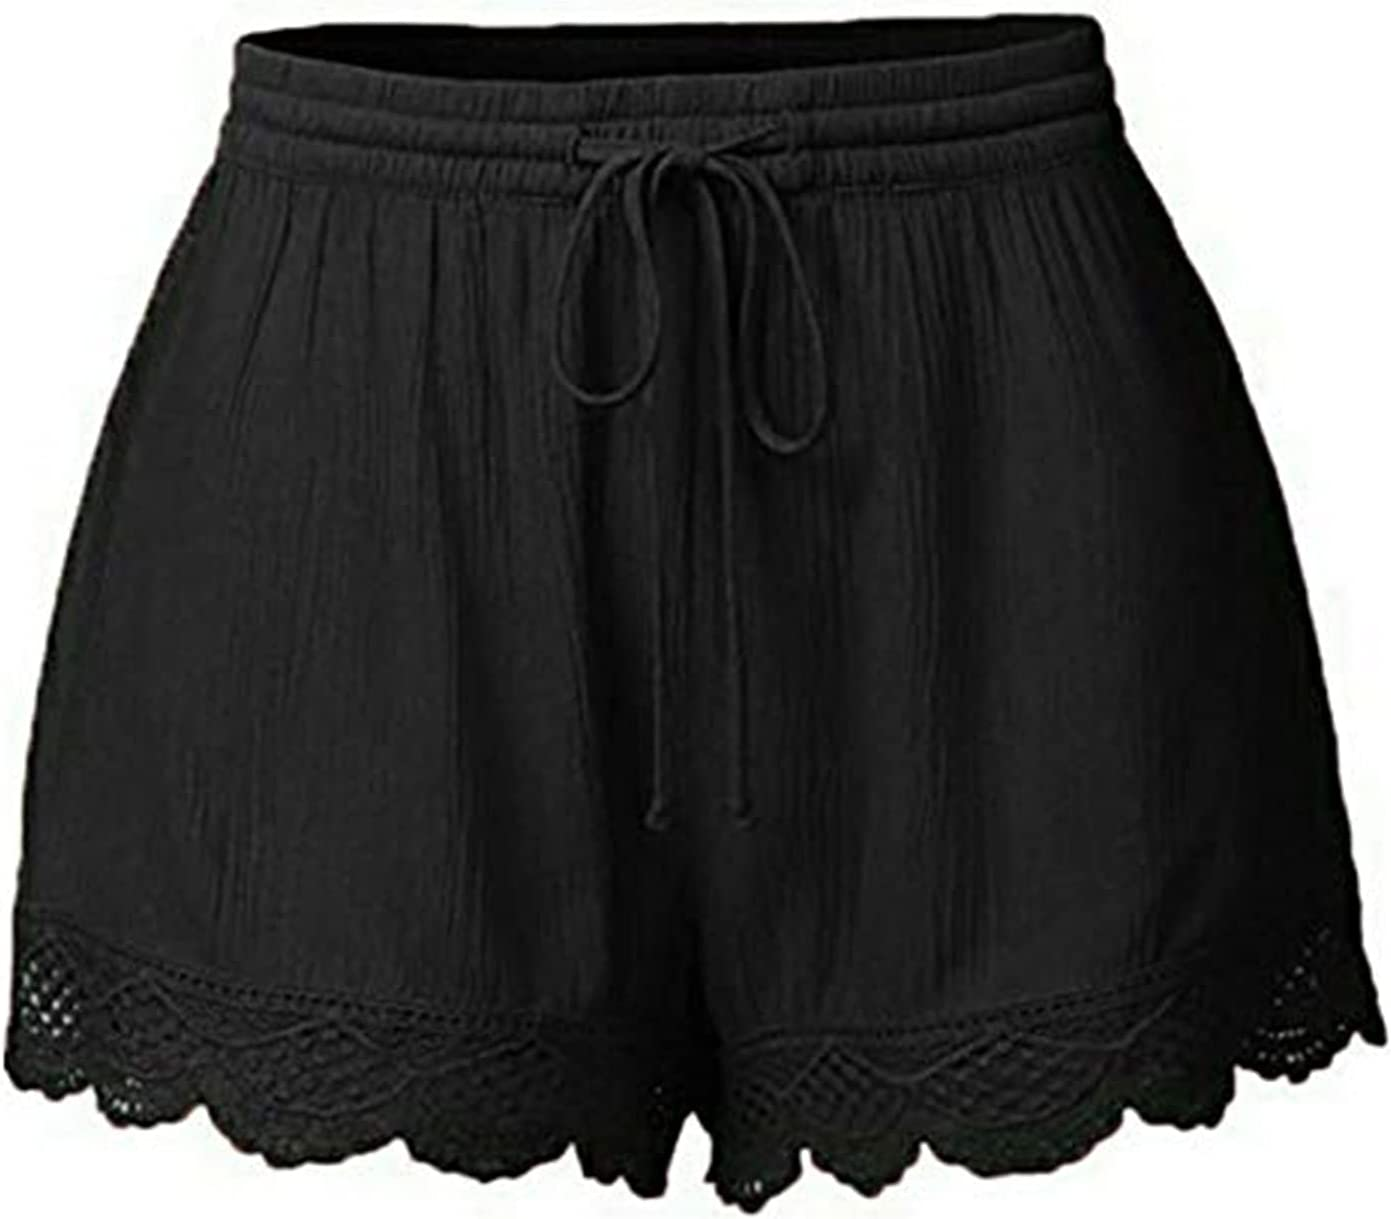 Women's Discount mail order Lace Trim Drawstring Shorts S Waist Lounge NEW Loose Elastic